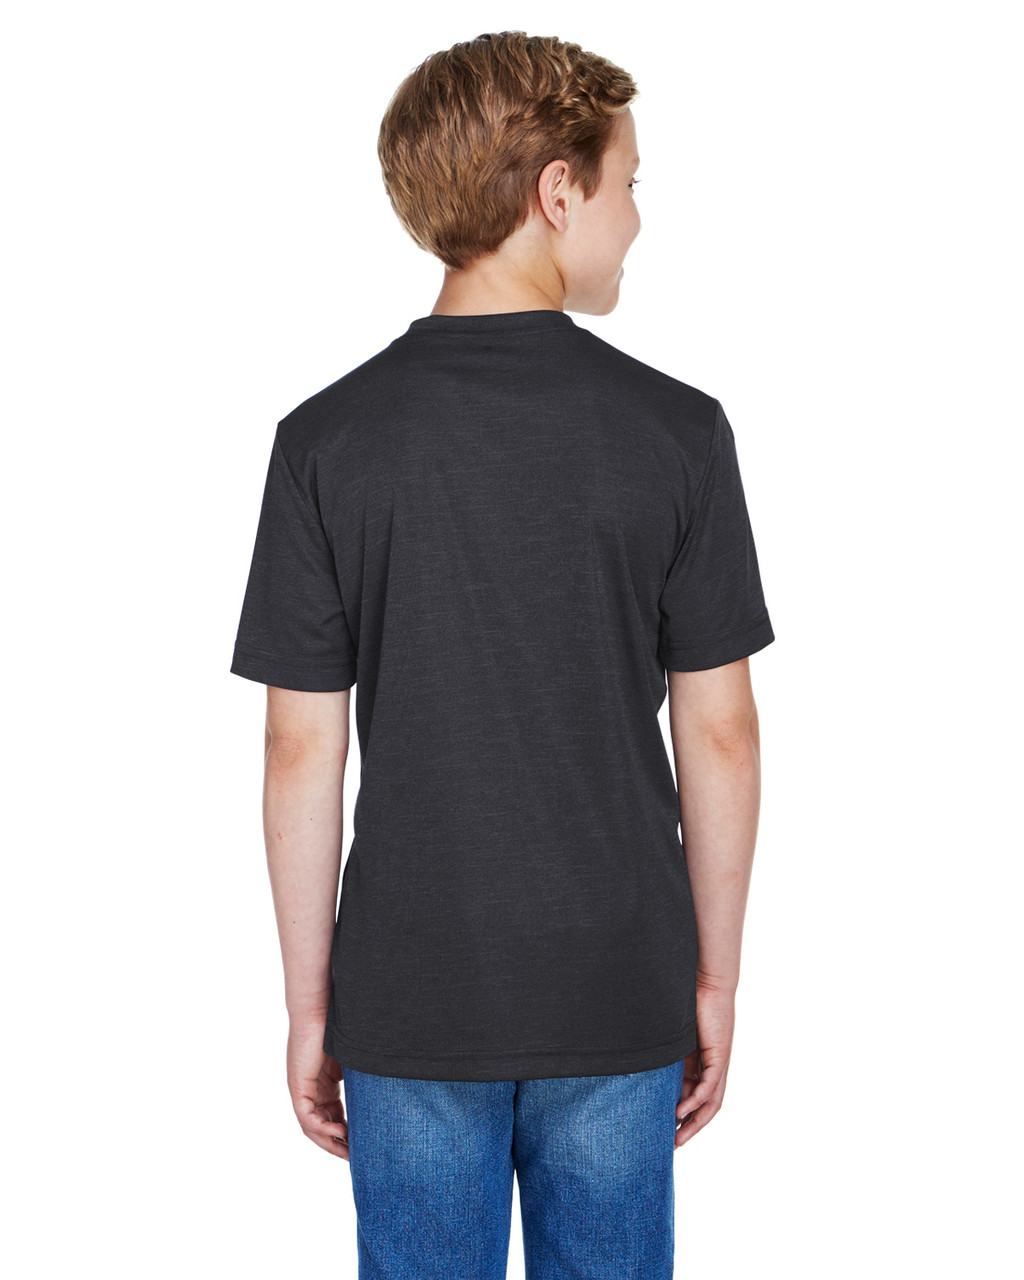 Black Heather - Back, TT11HY Team 365 Youth Sonic Heather Performance T-Shirt | BlankClothing.ca